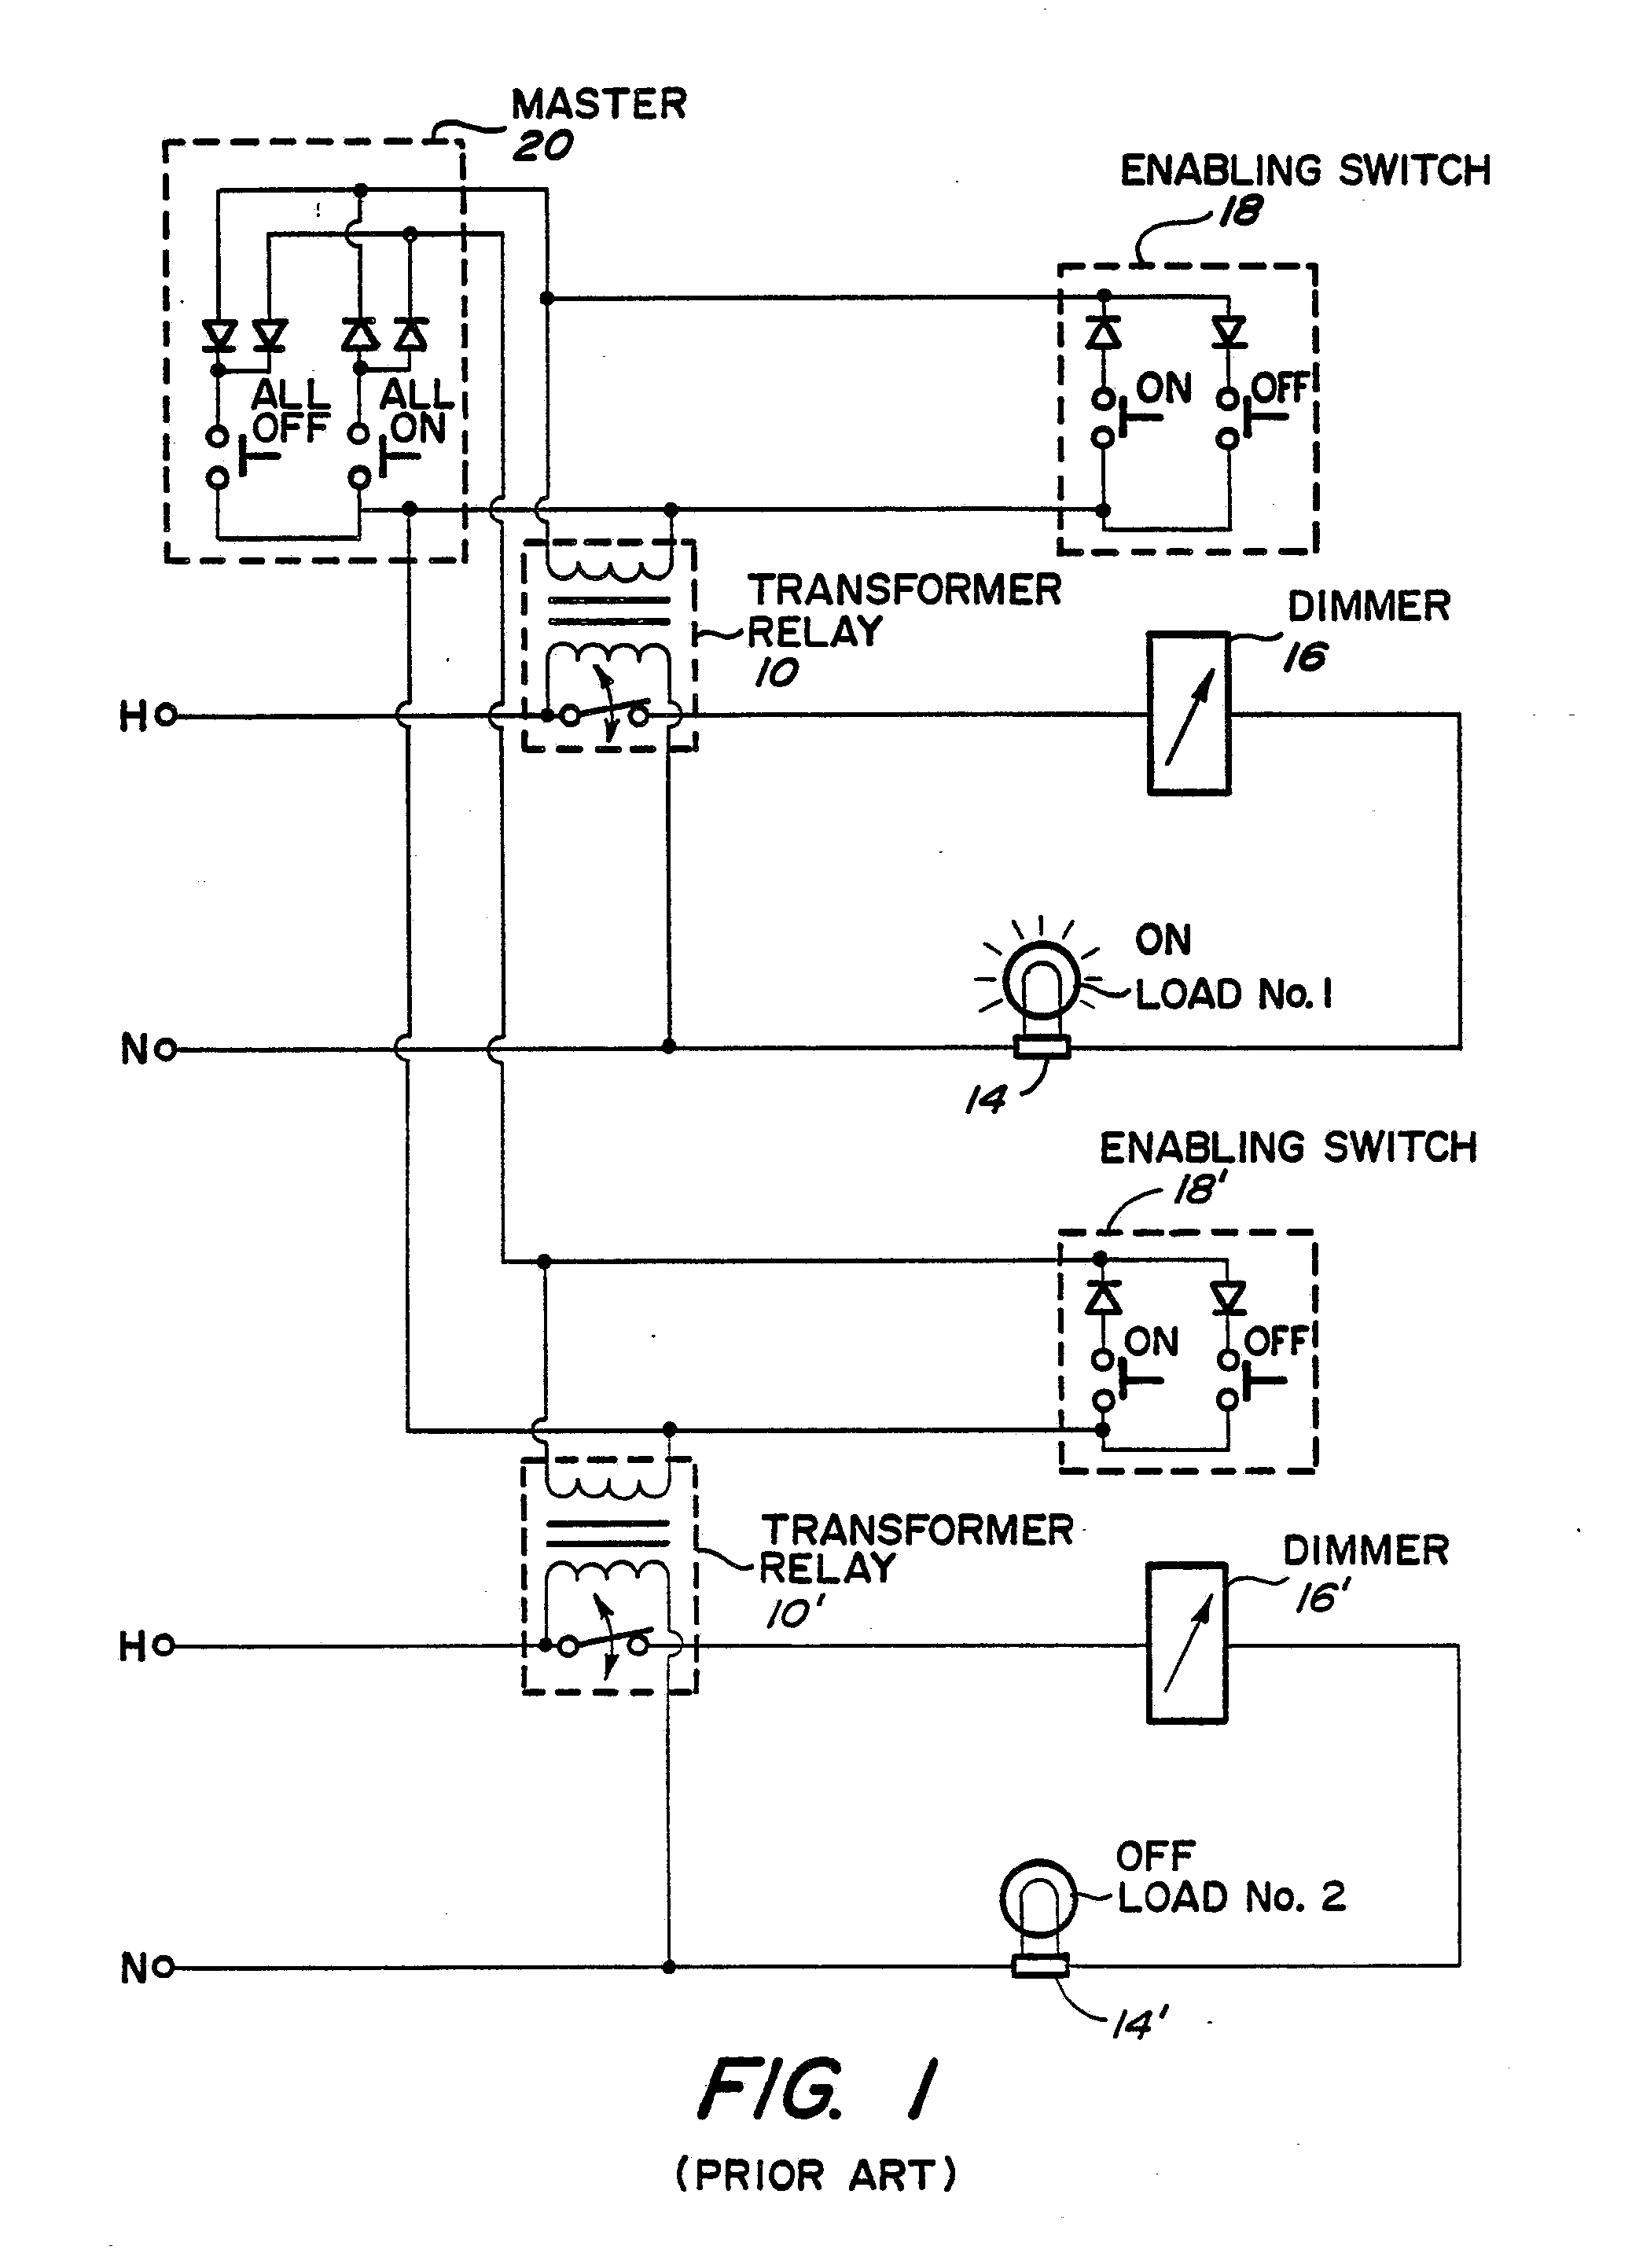 wiring diagram for lutron dimmer the wiring diagram lutron lighting diagram for dimming vidim wiring diagram wiring diagram